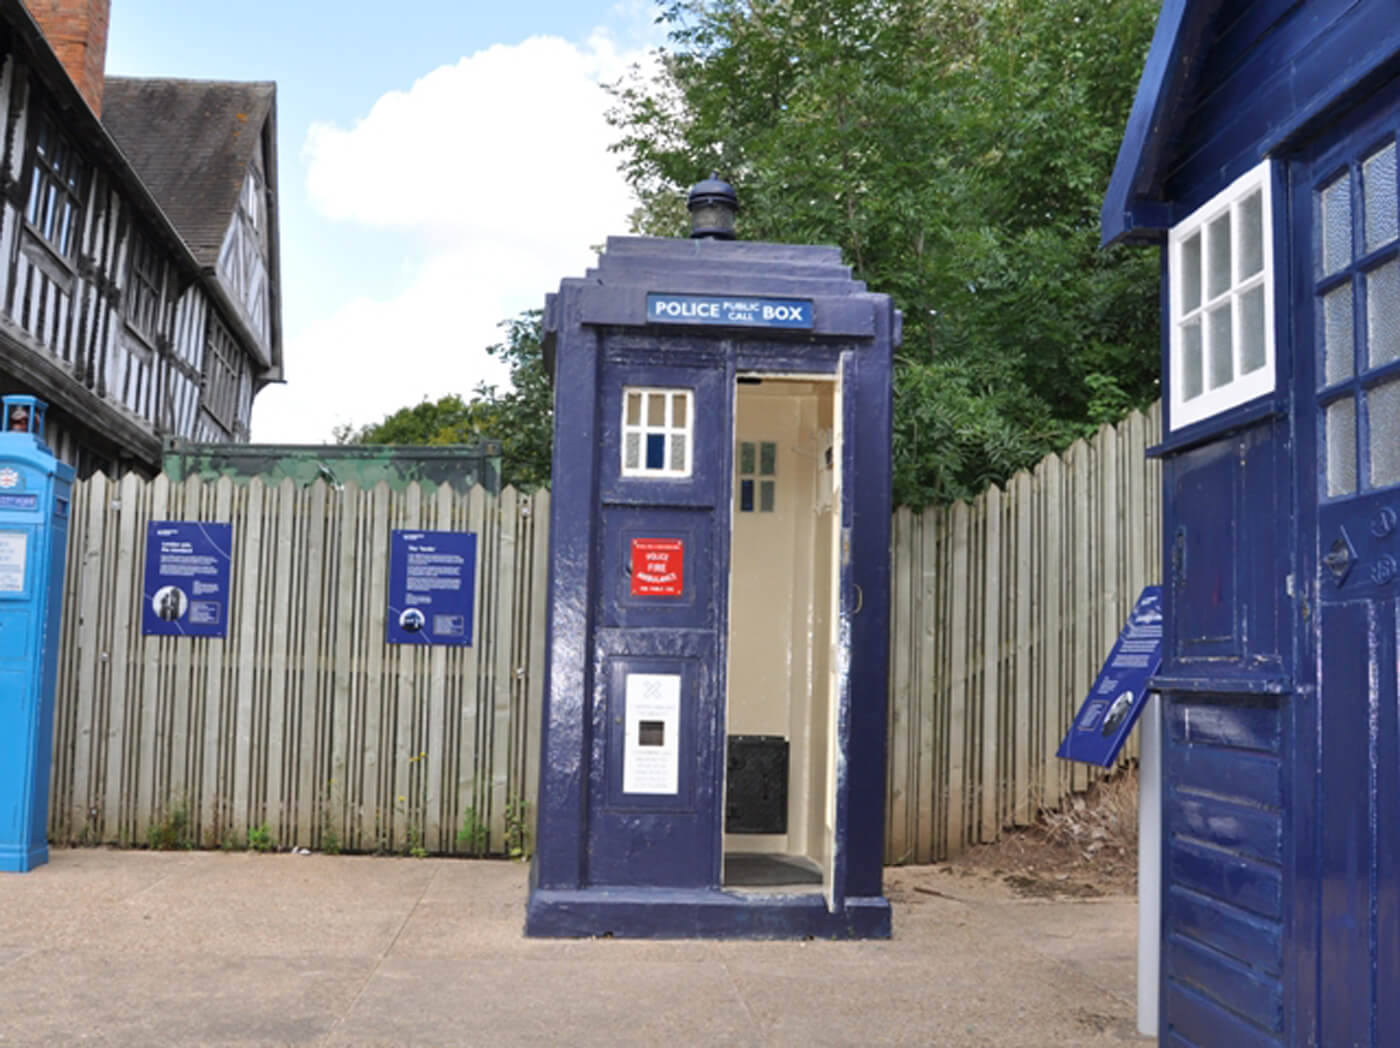 Book launch for 'The British Phonebox'